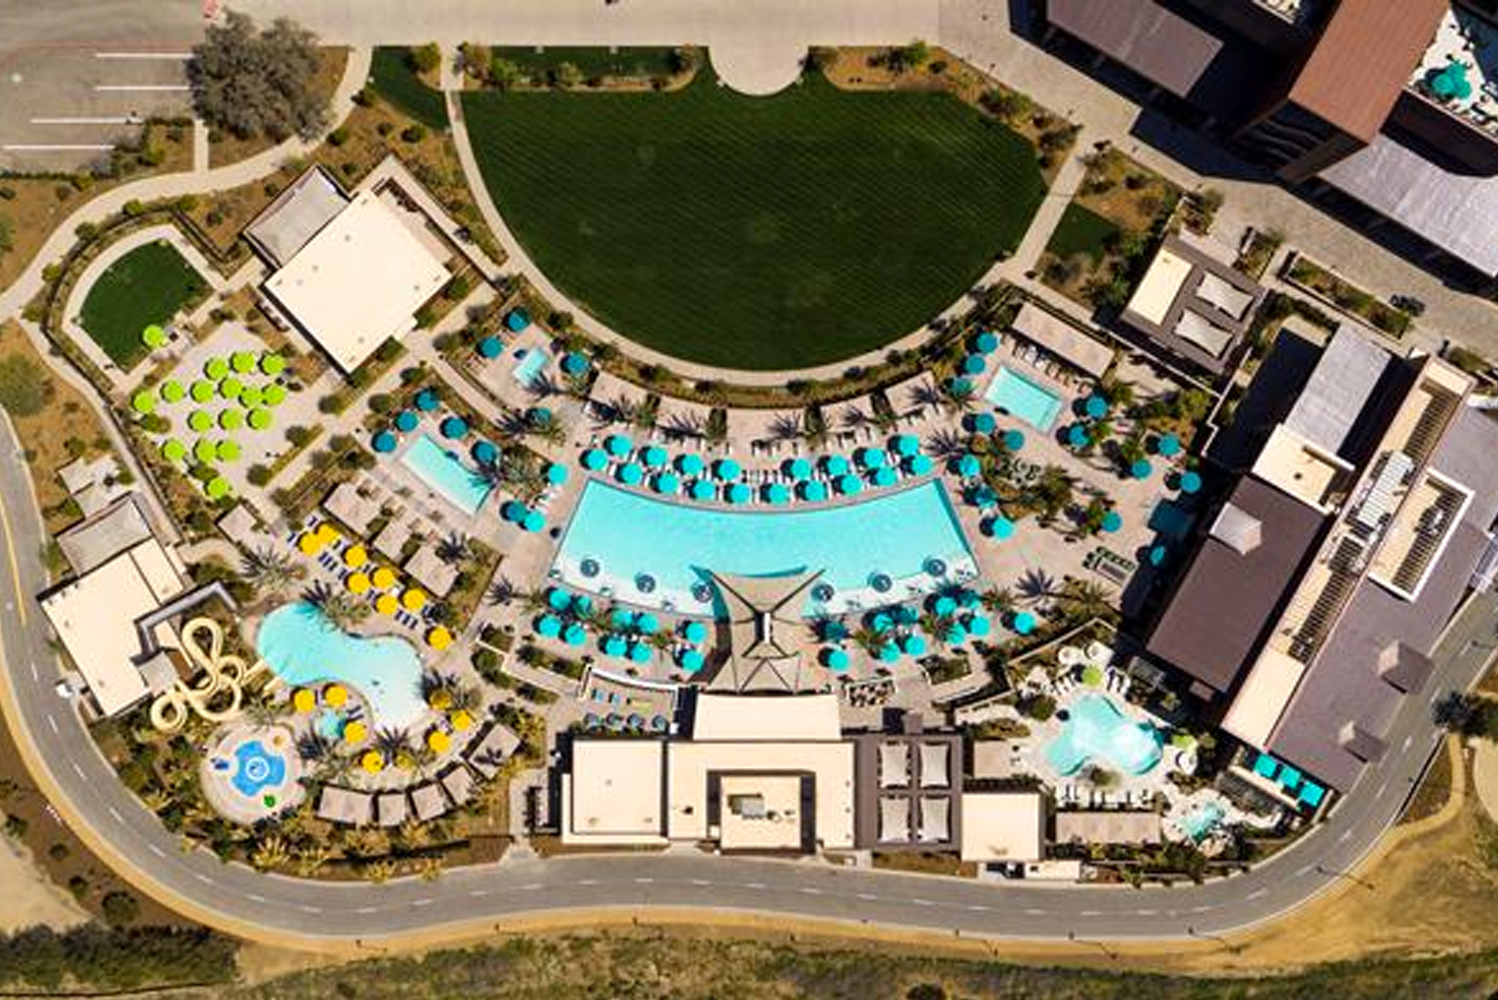 Landscape architectural firm Lifescapes International completed a landscape design for the $300 million expansion of the Pechanga Resort Casino.